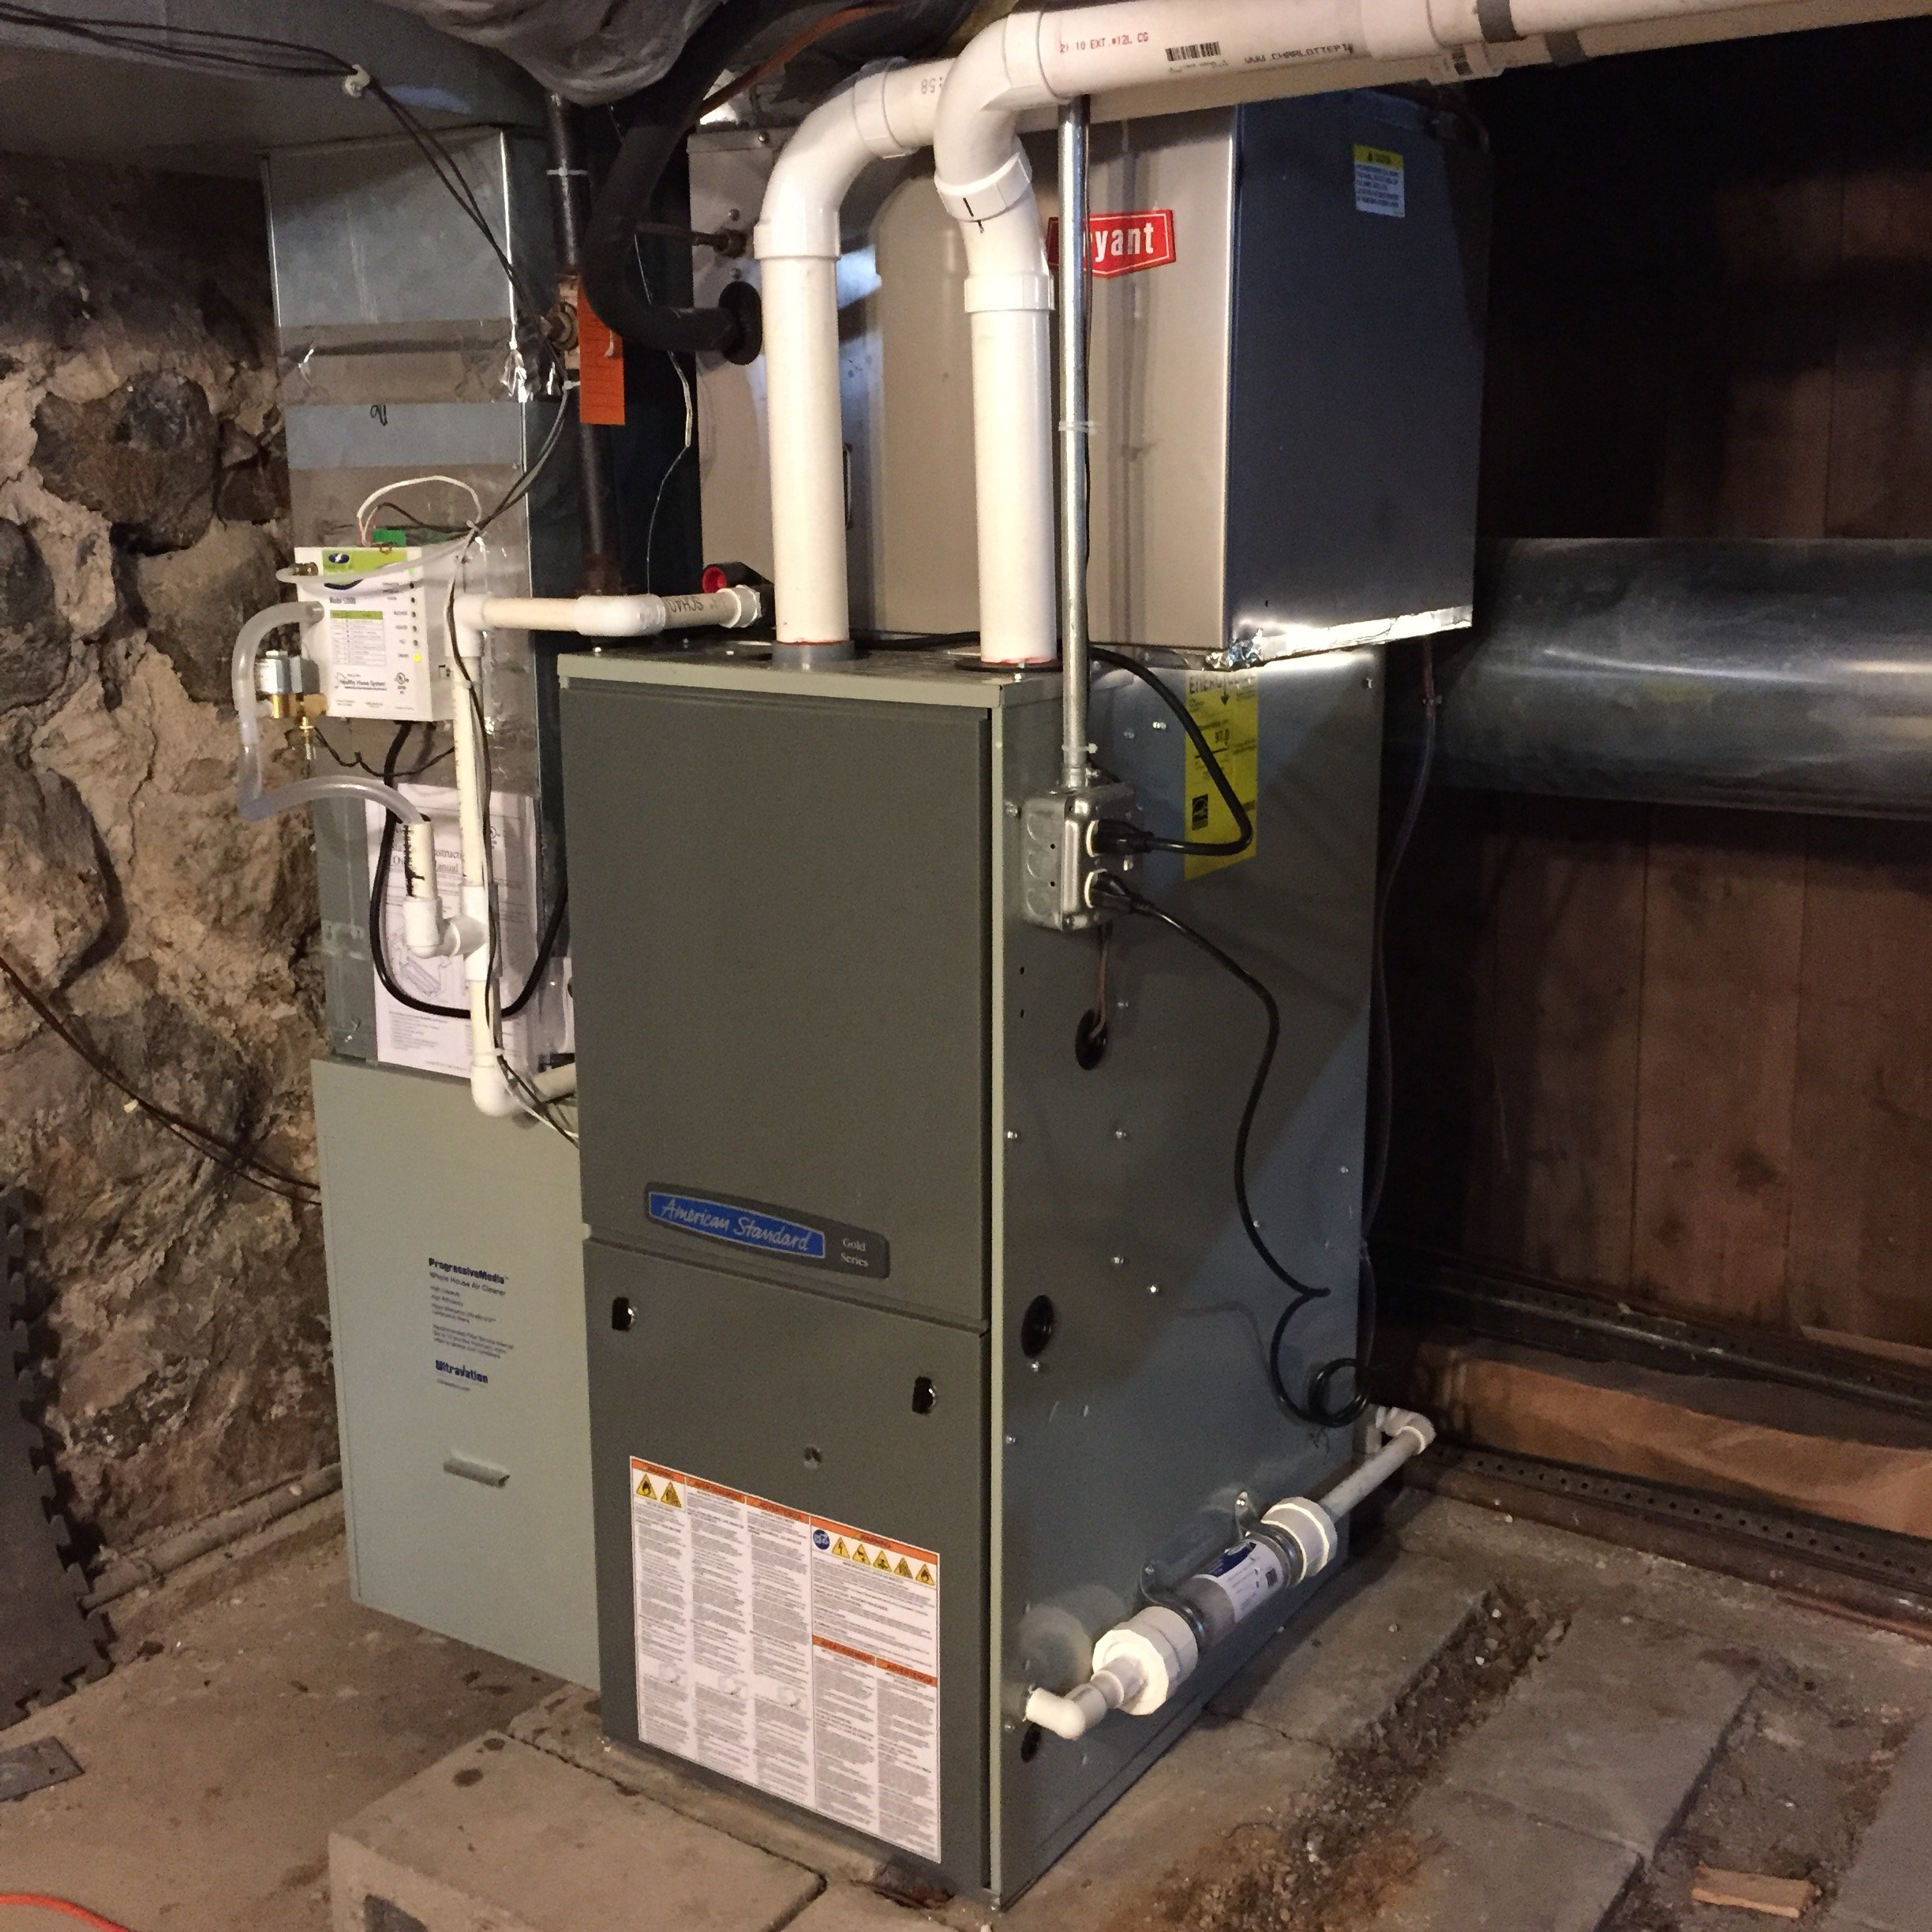 American Standard Furnace With AC